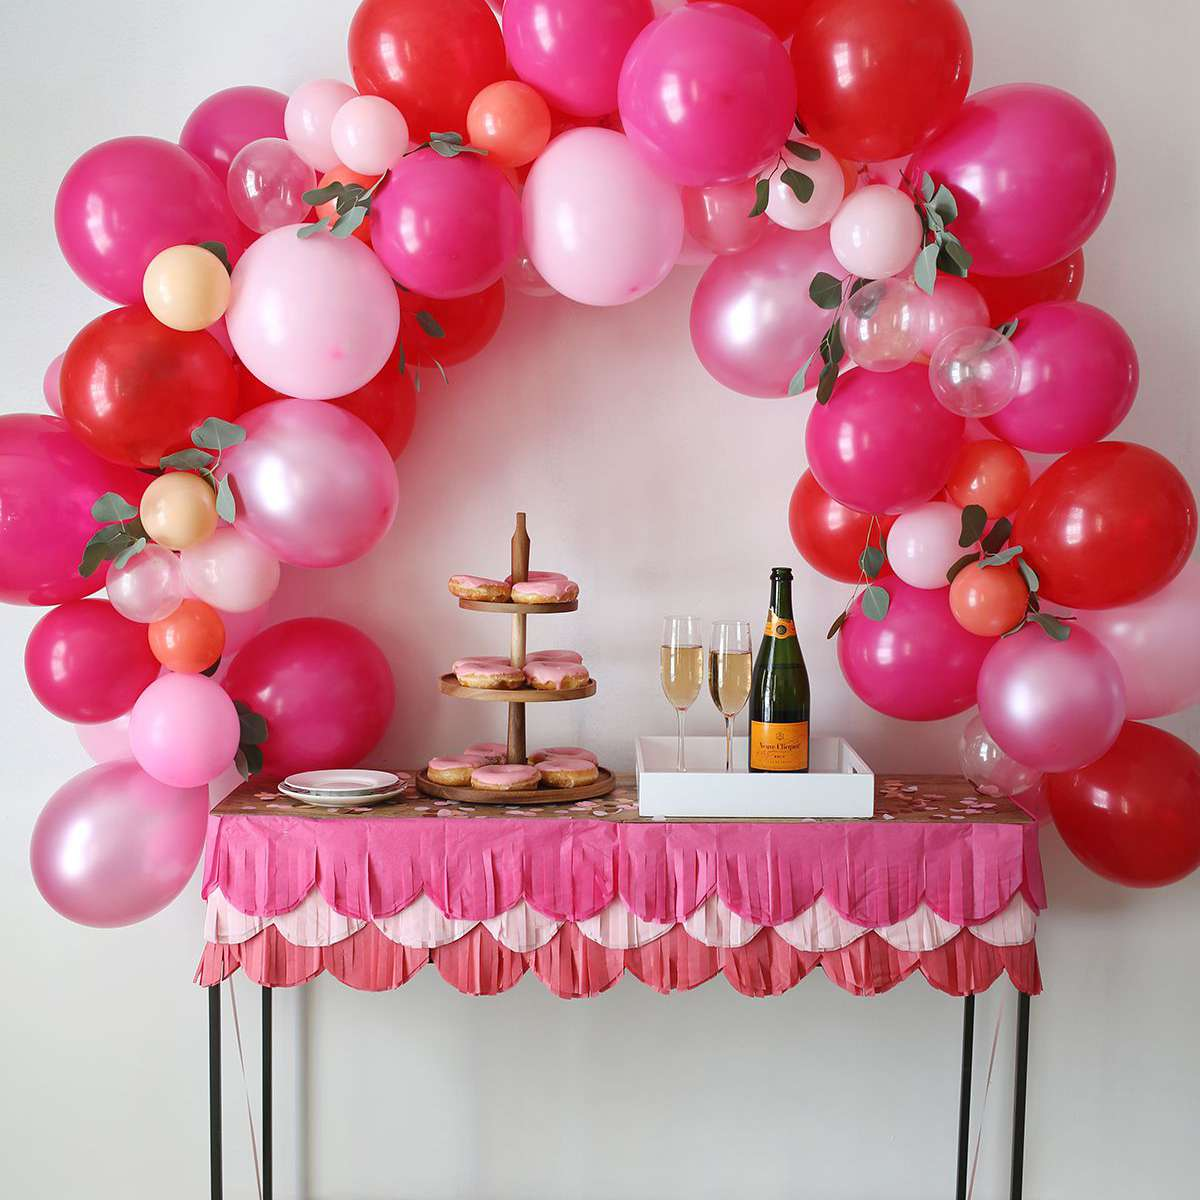 22 Diy Decor Ideas For Mother S Day